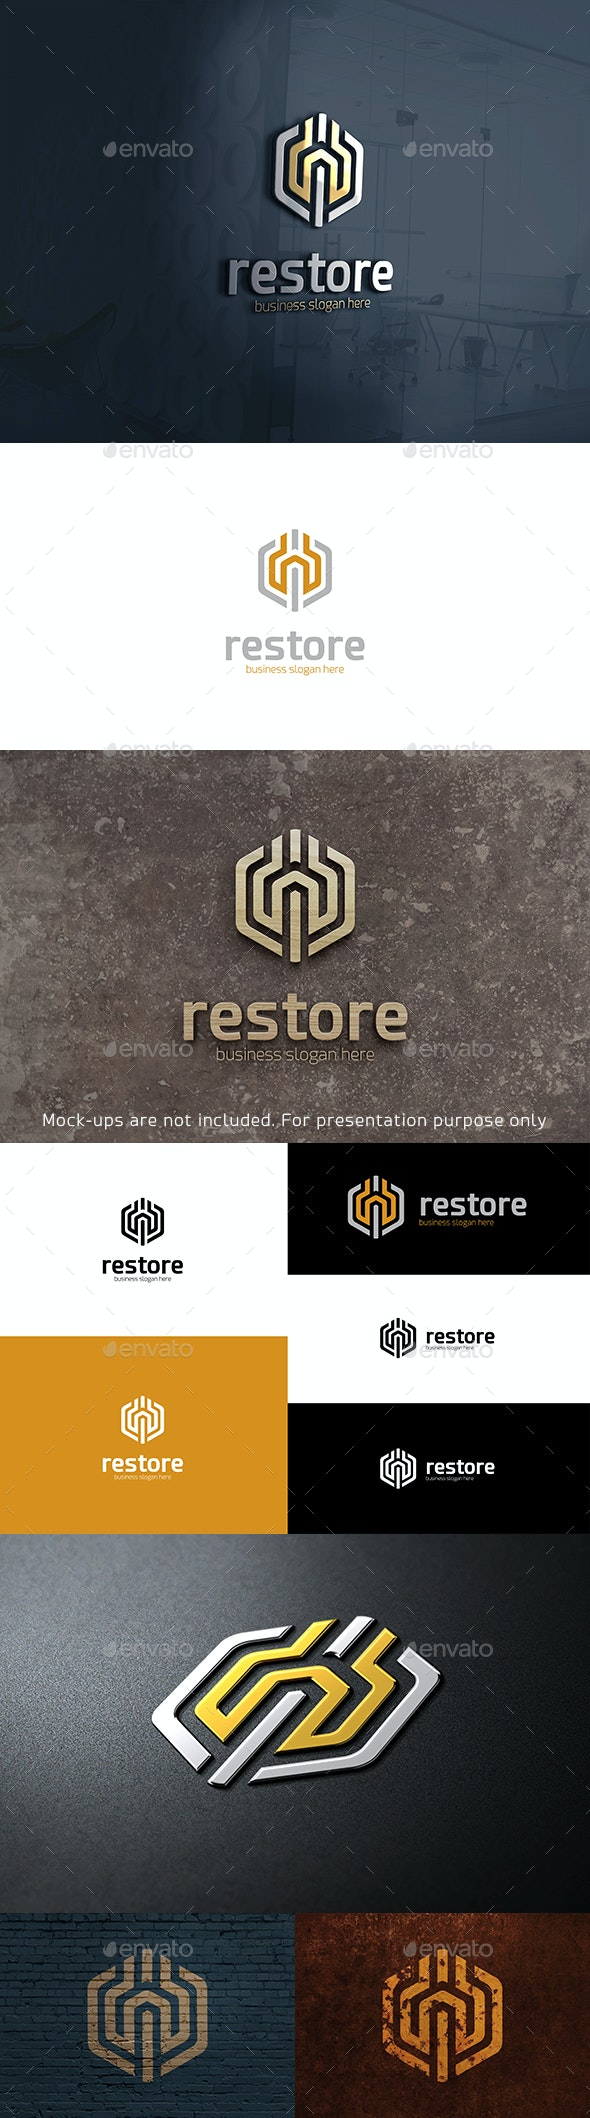 Restore Logo Hexagonal Abstract Symbol with Wrench - Objects Logo Templates